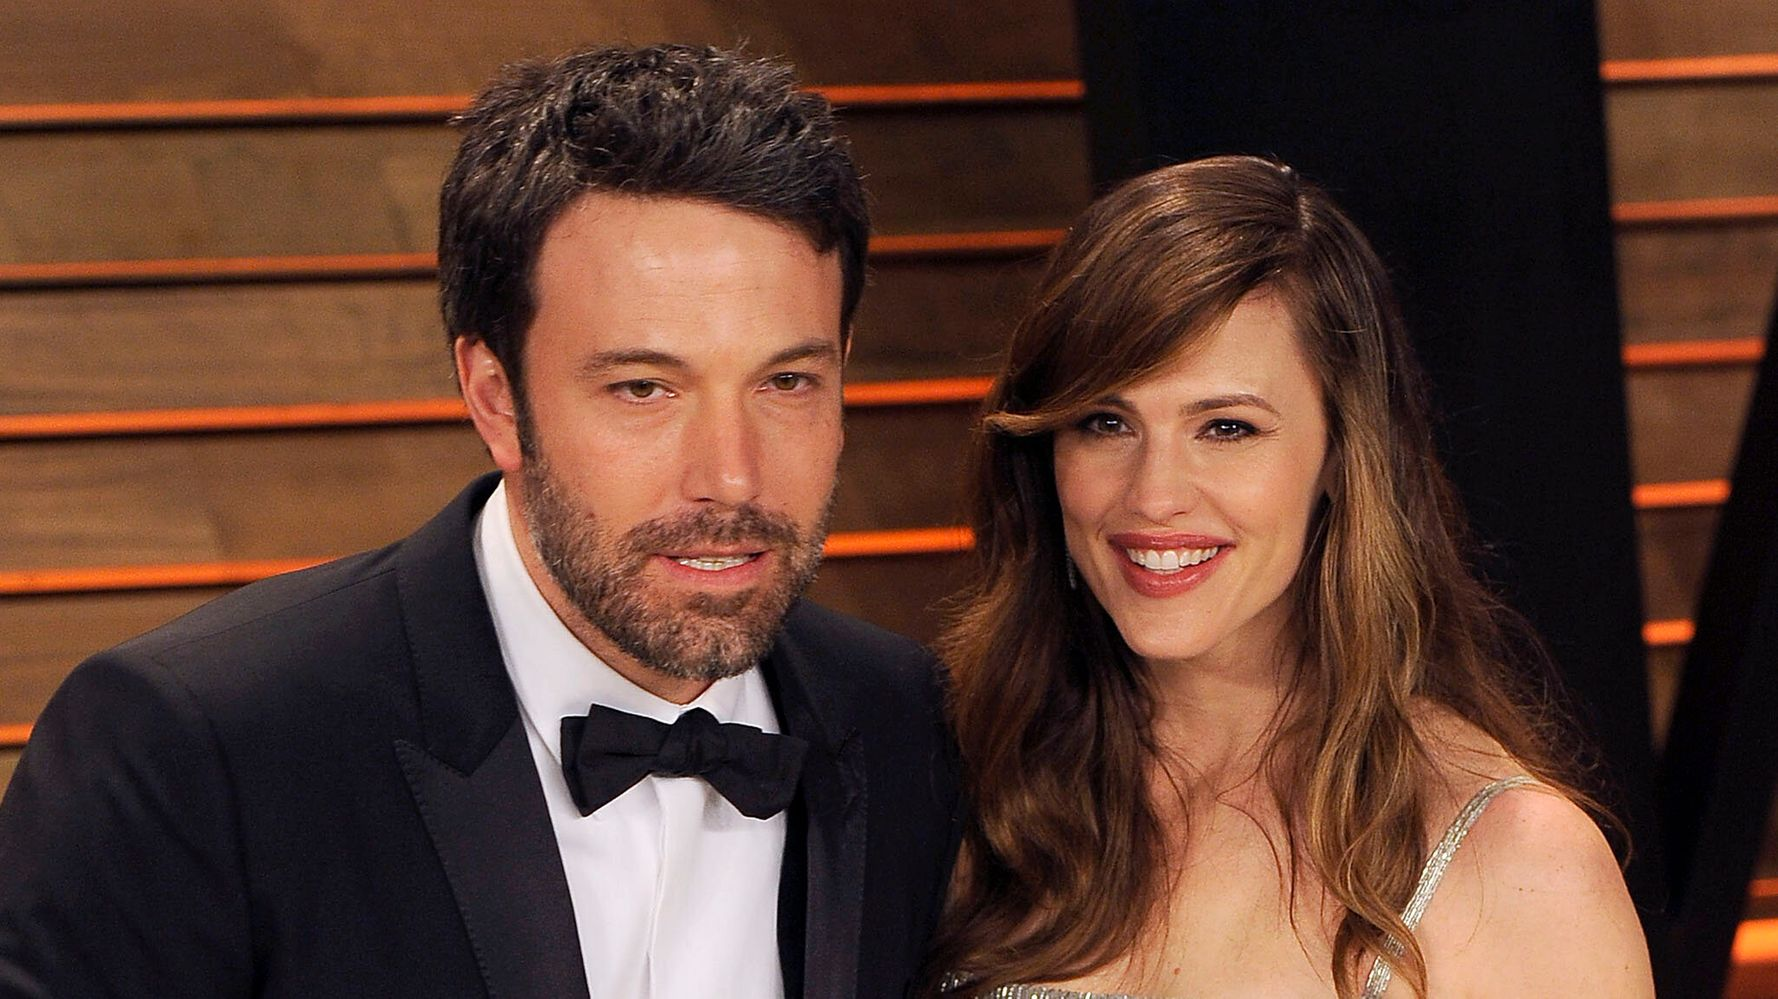 Ben Affleck: Divorce From Jennifer Garner Is 'Biggest Regret Of My Life'